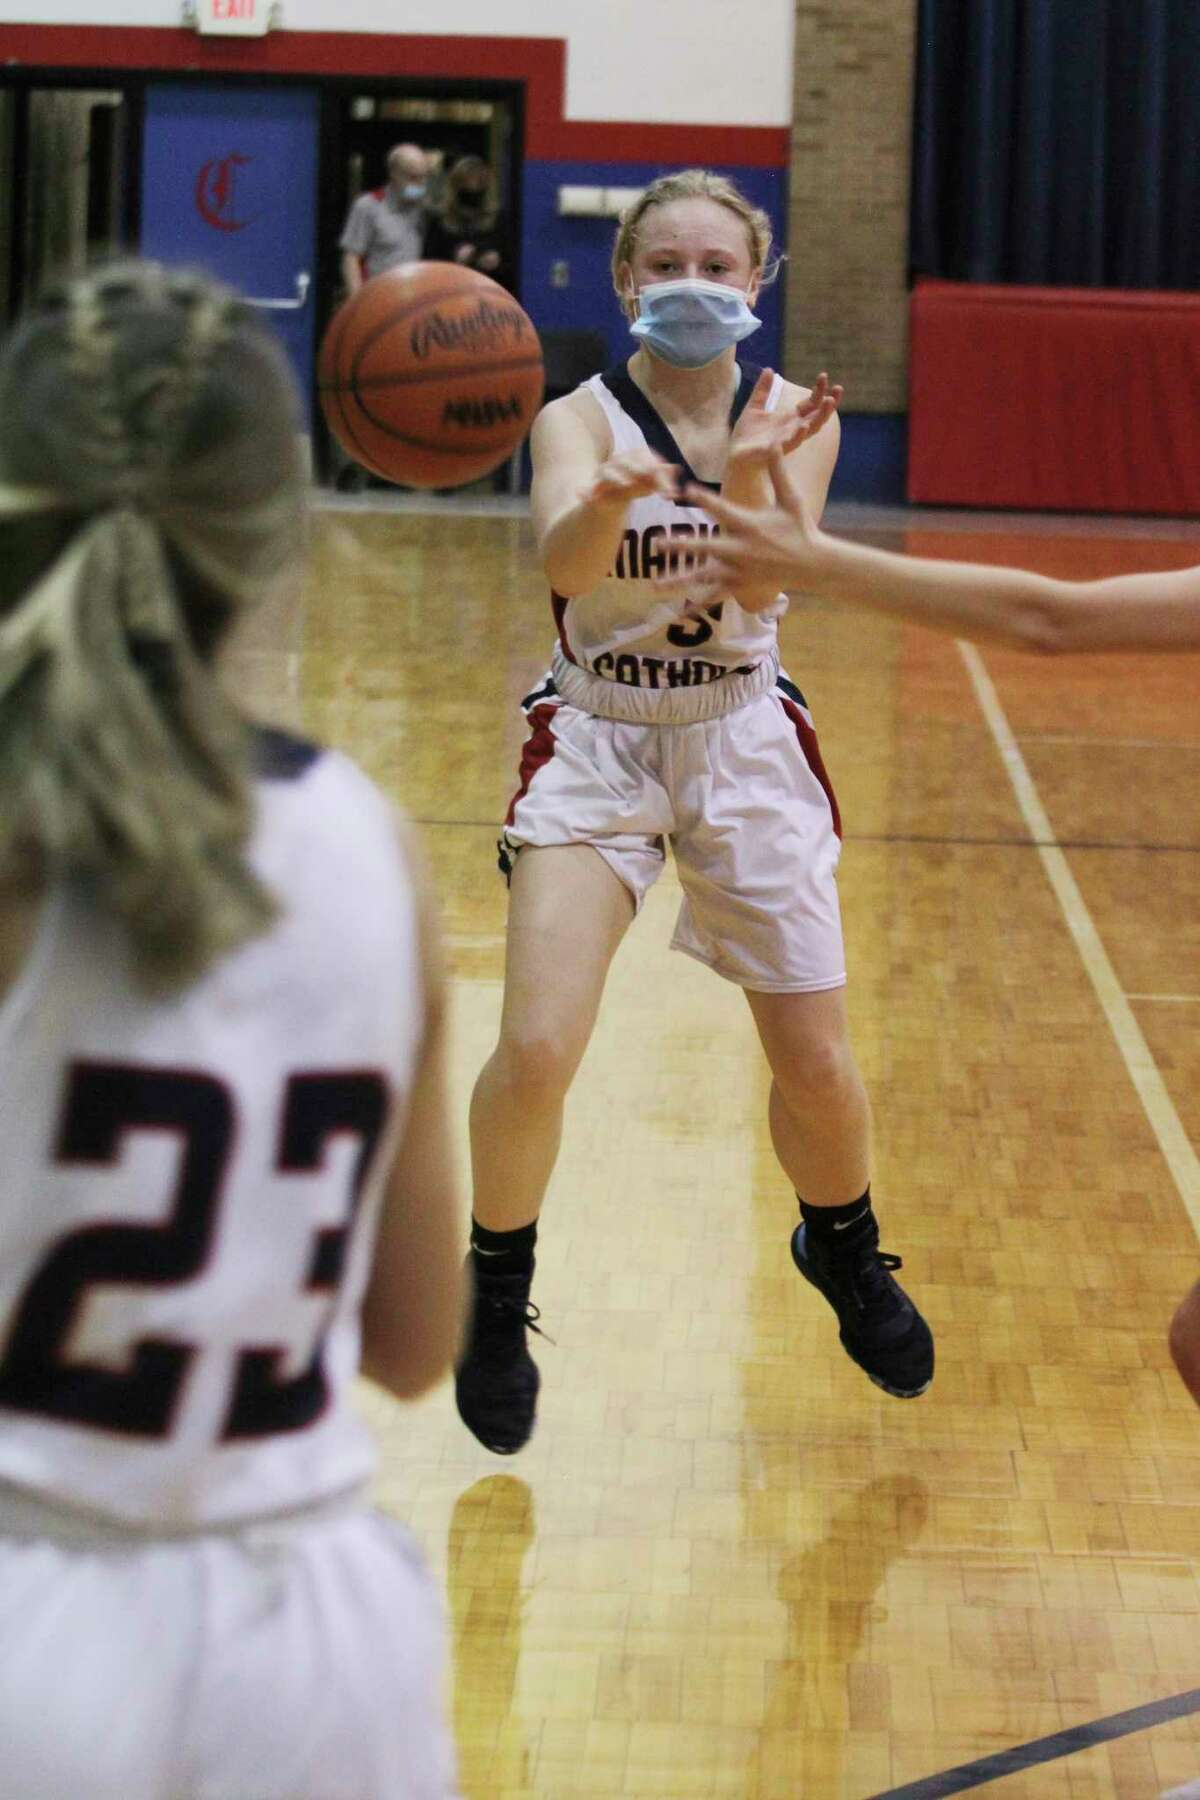 Manistee Catholic Central's Grace Kidd was named second team all-conference in the West Michigan D League this season. (News Advocate file photo)